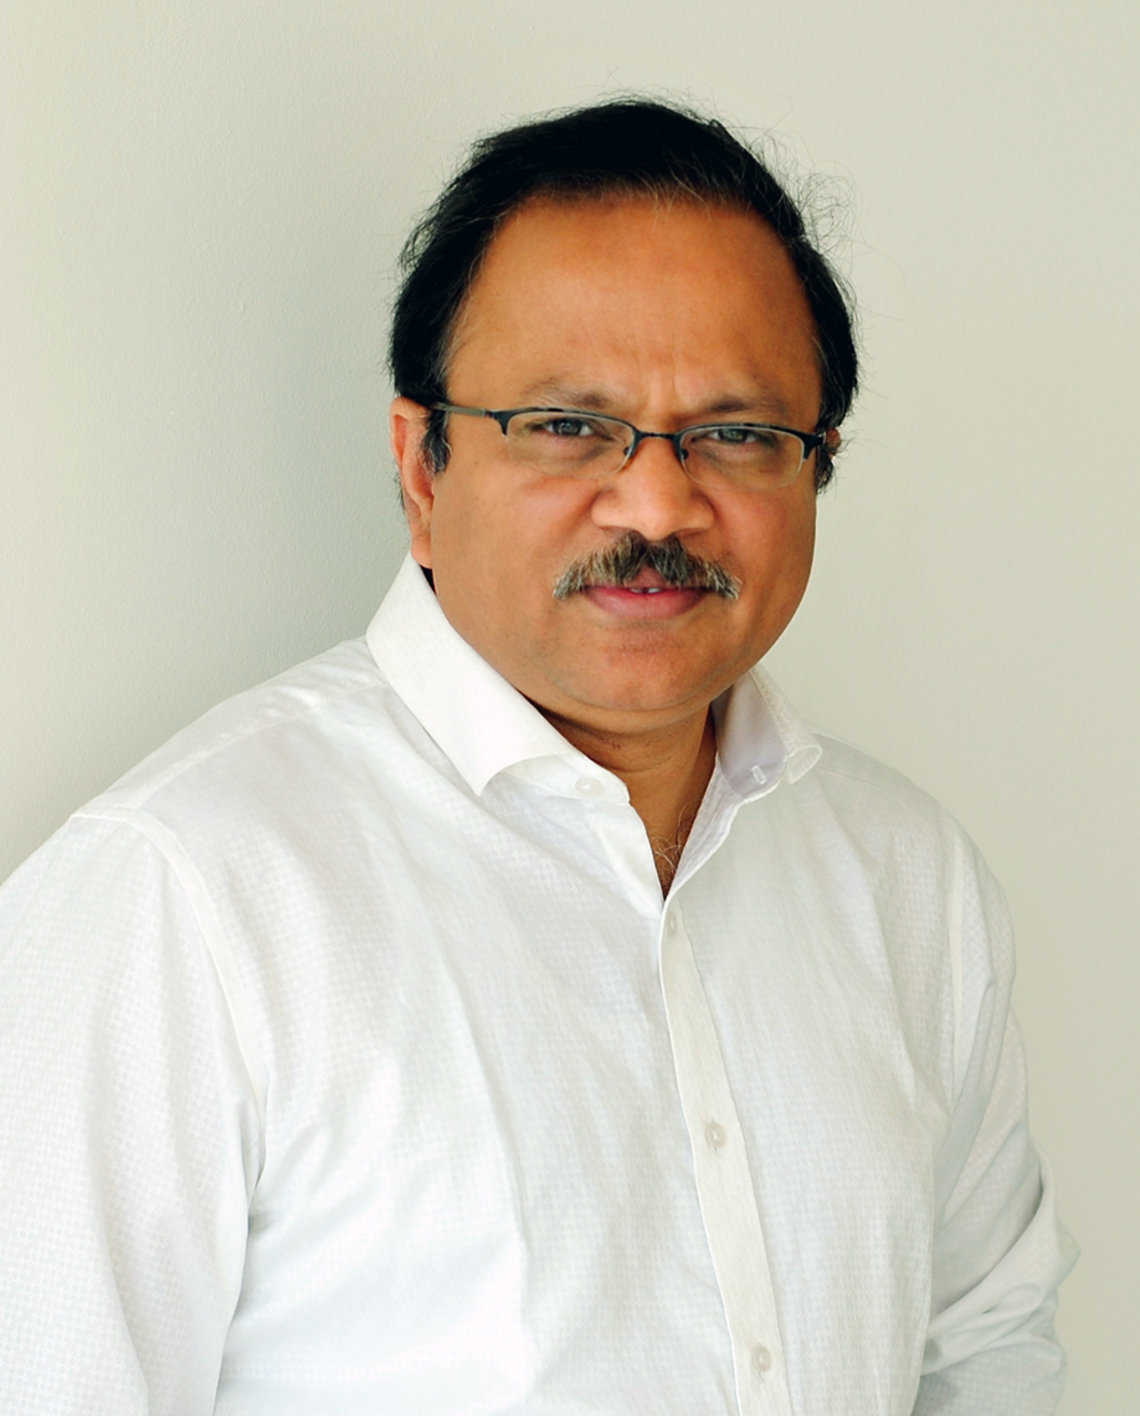 Dr. Manas Chattopadhyay